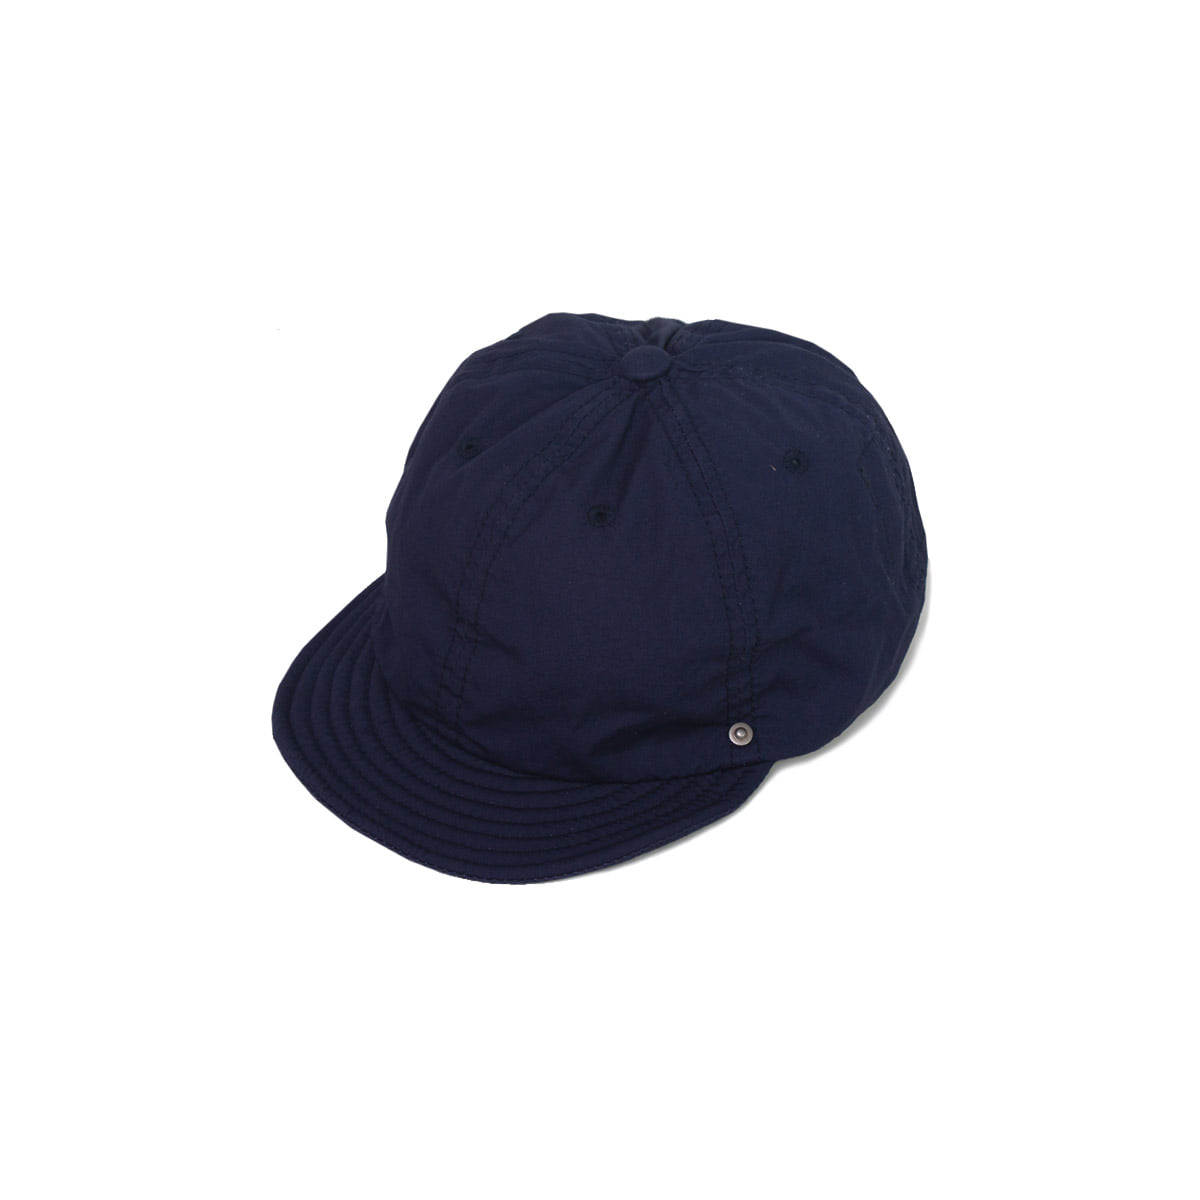 [DECHO] BALL CAP BUCKLE -VENTILE- 'NAVY'